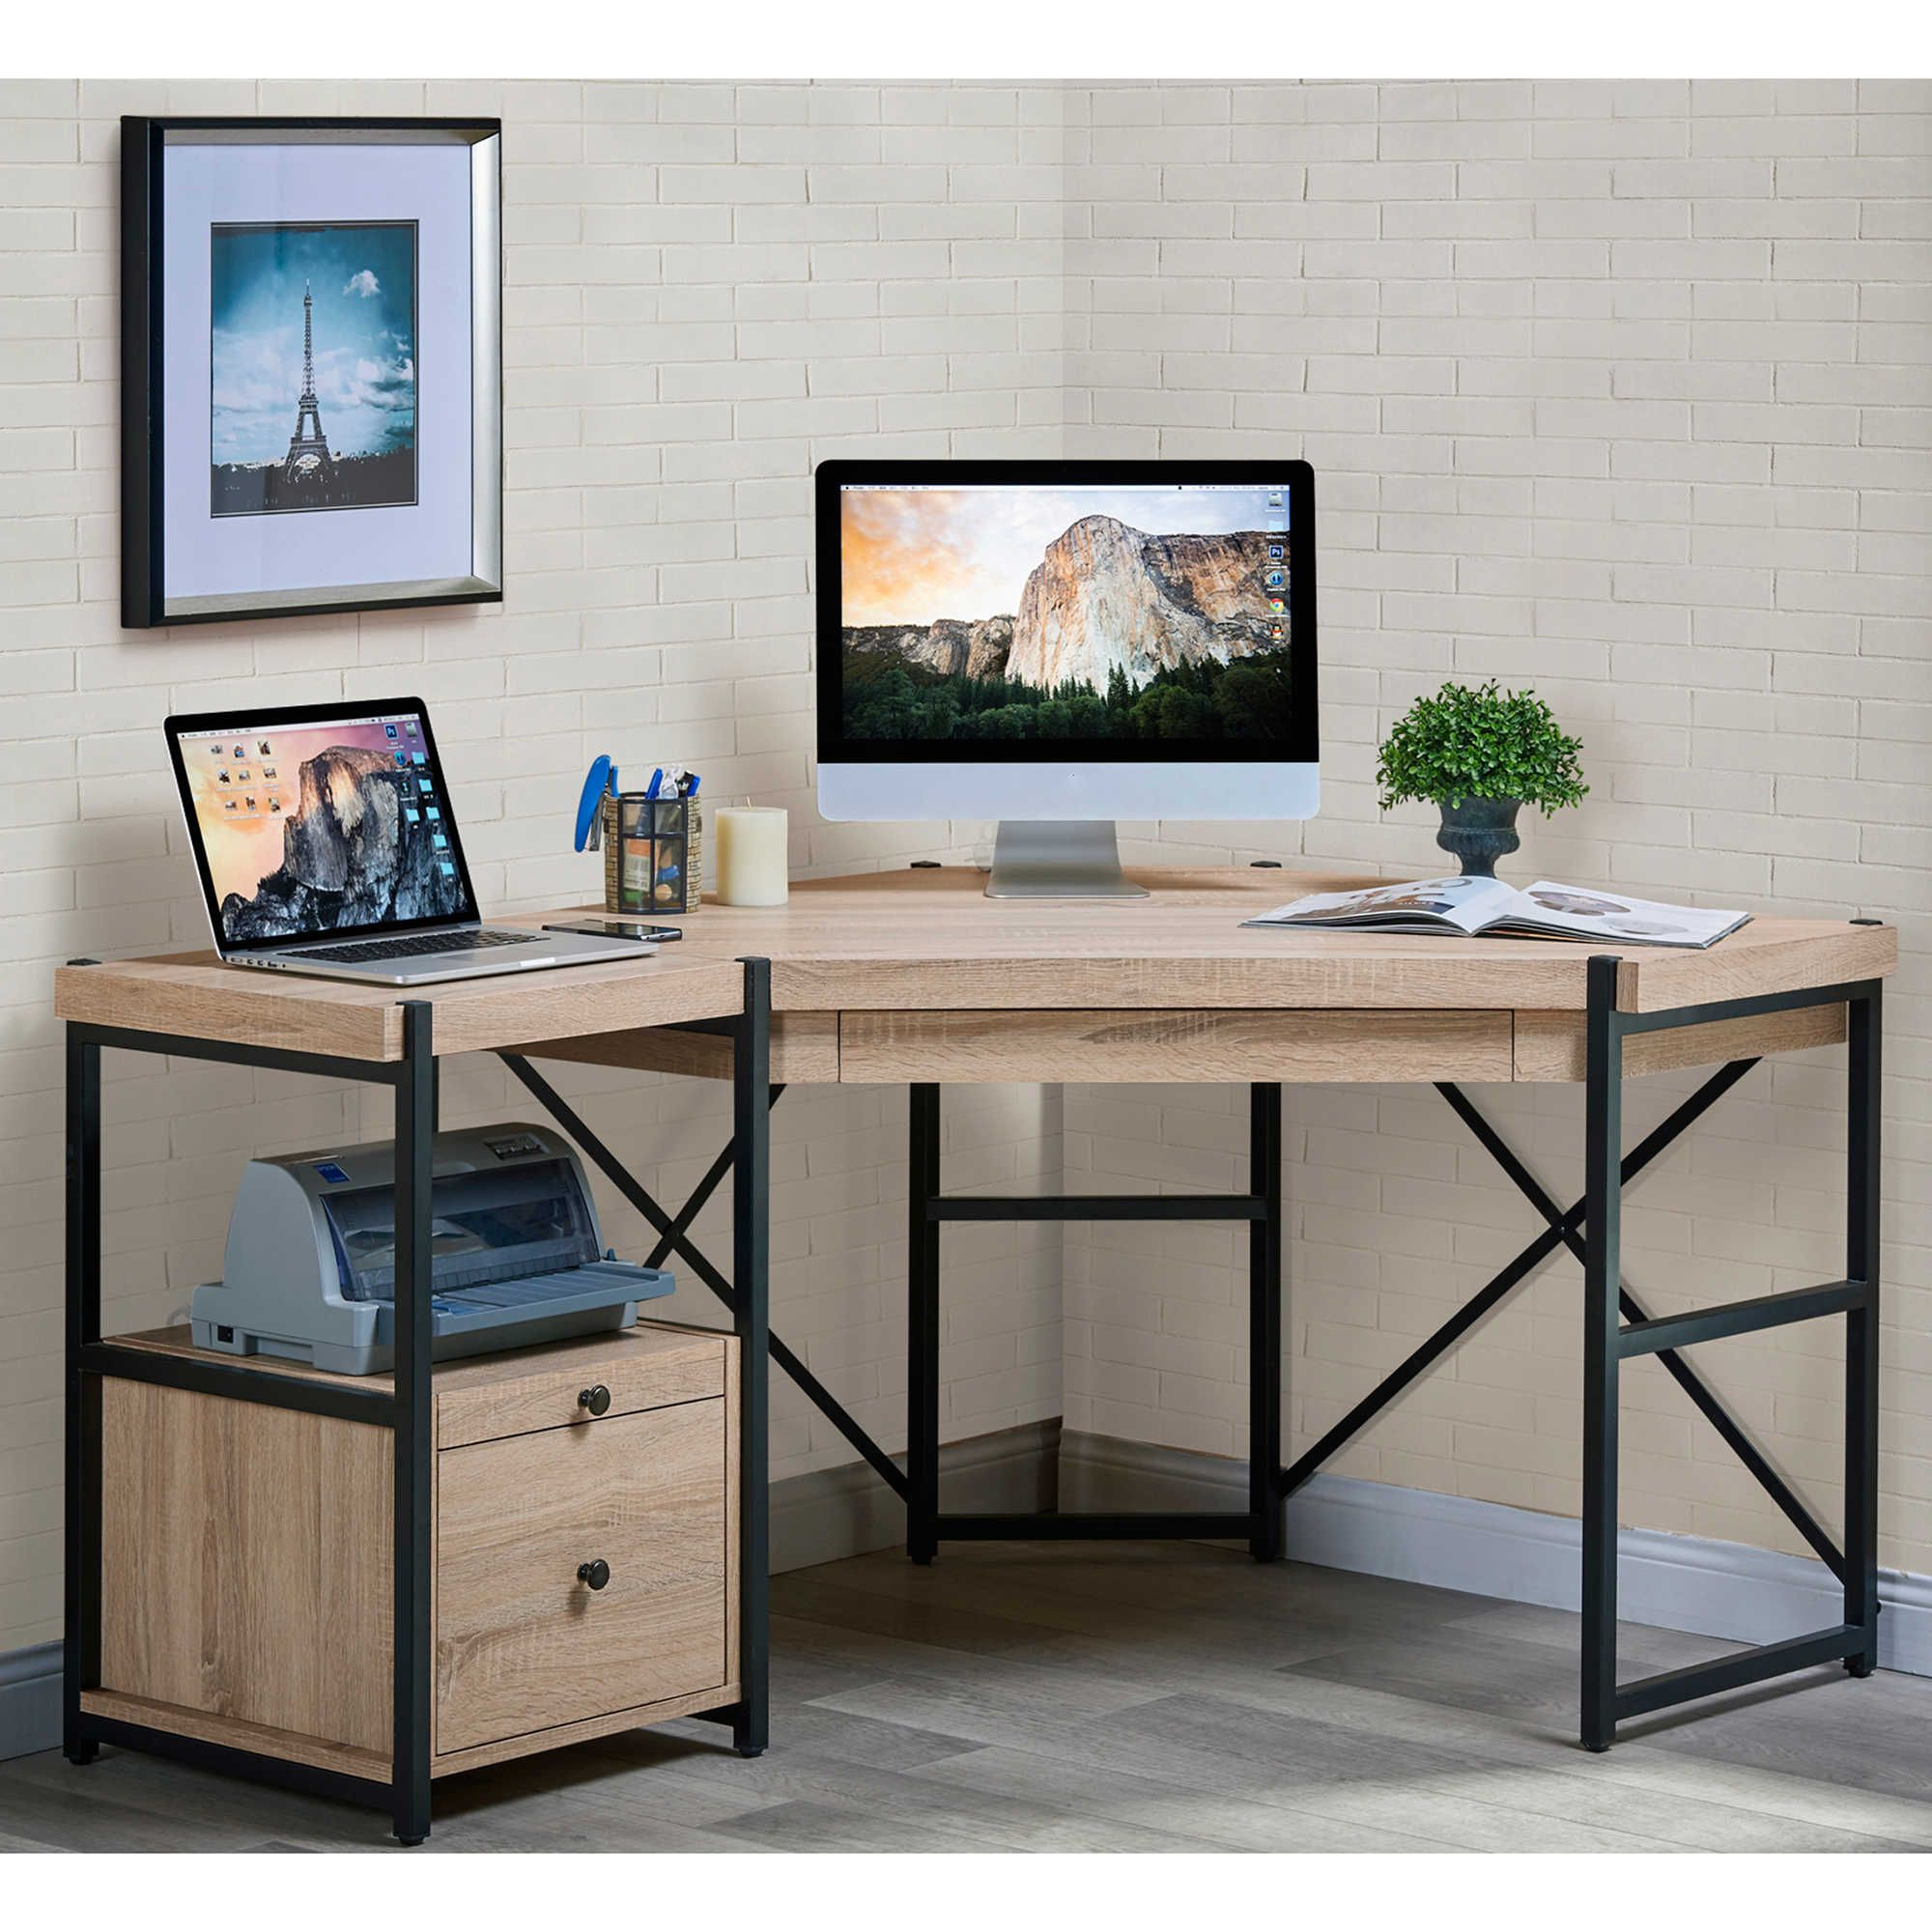 Turnkey Emery 2 Piece Corner Desk With Pedestal In Light